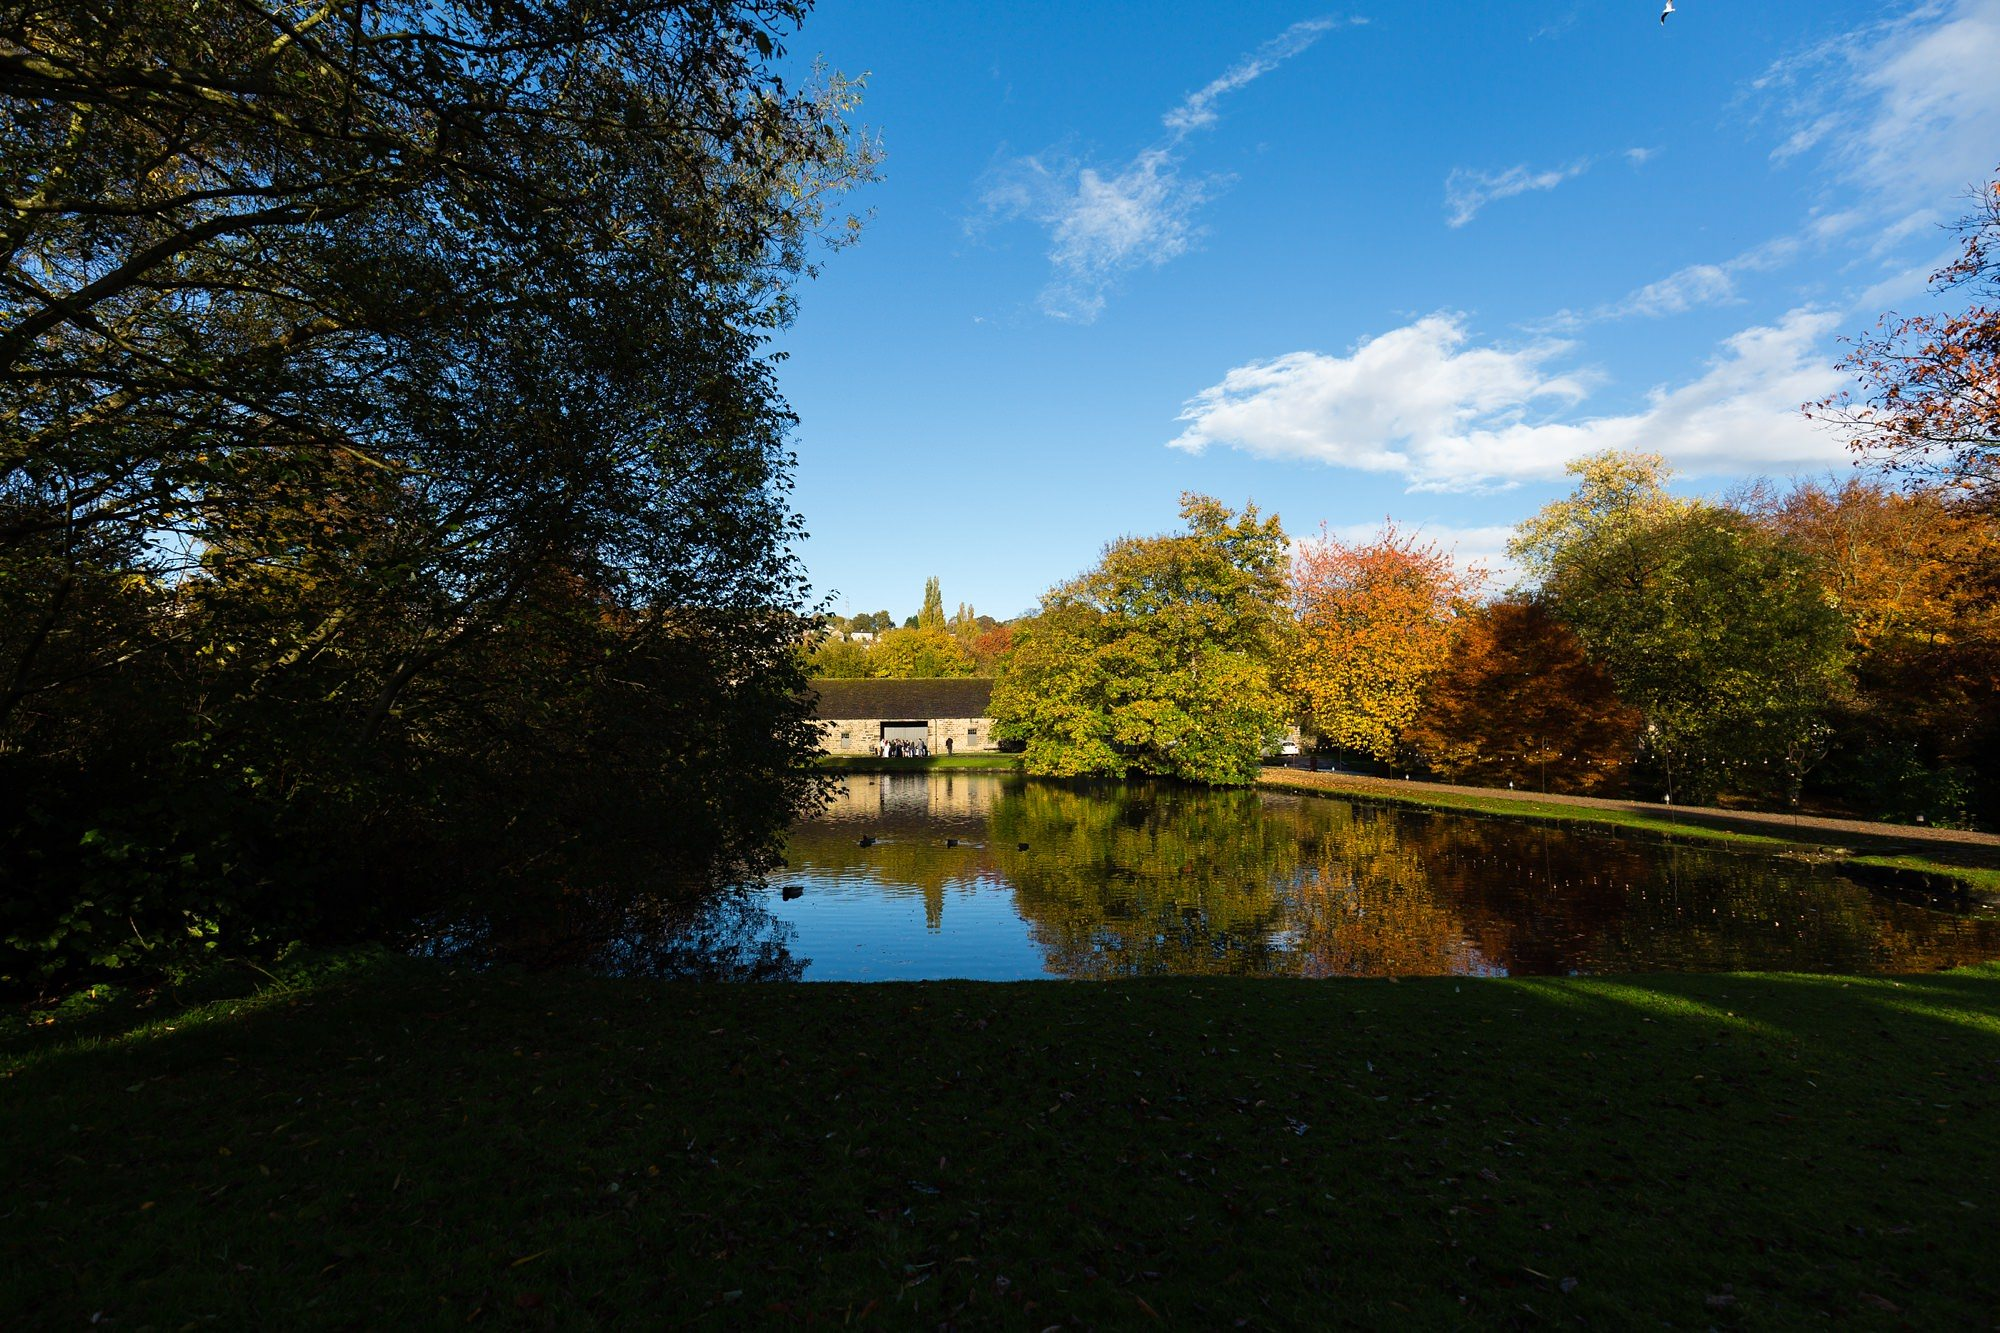 Exterior photograph during autumn at East Riddlesden Hall Airedale Barn by lake with reflections